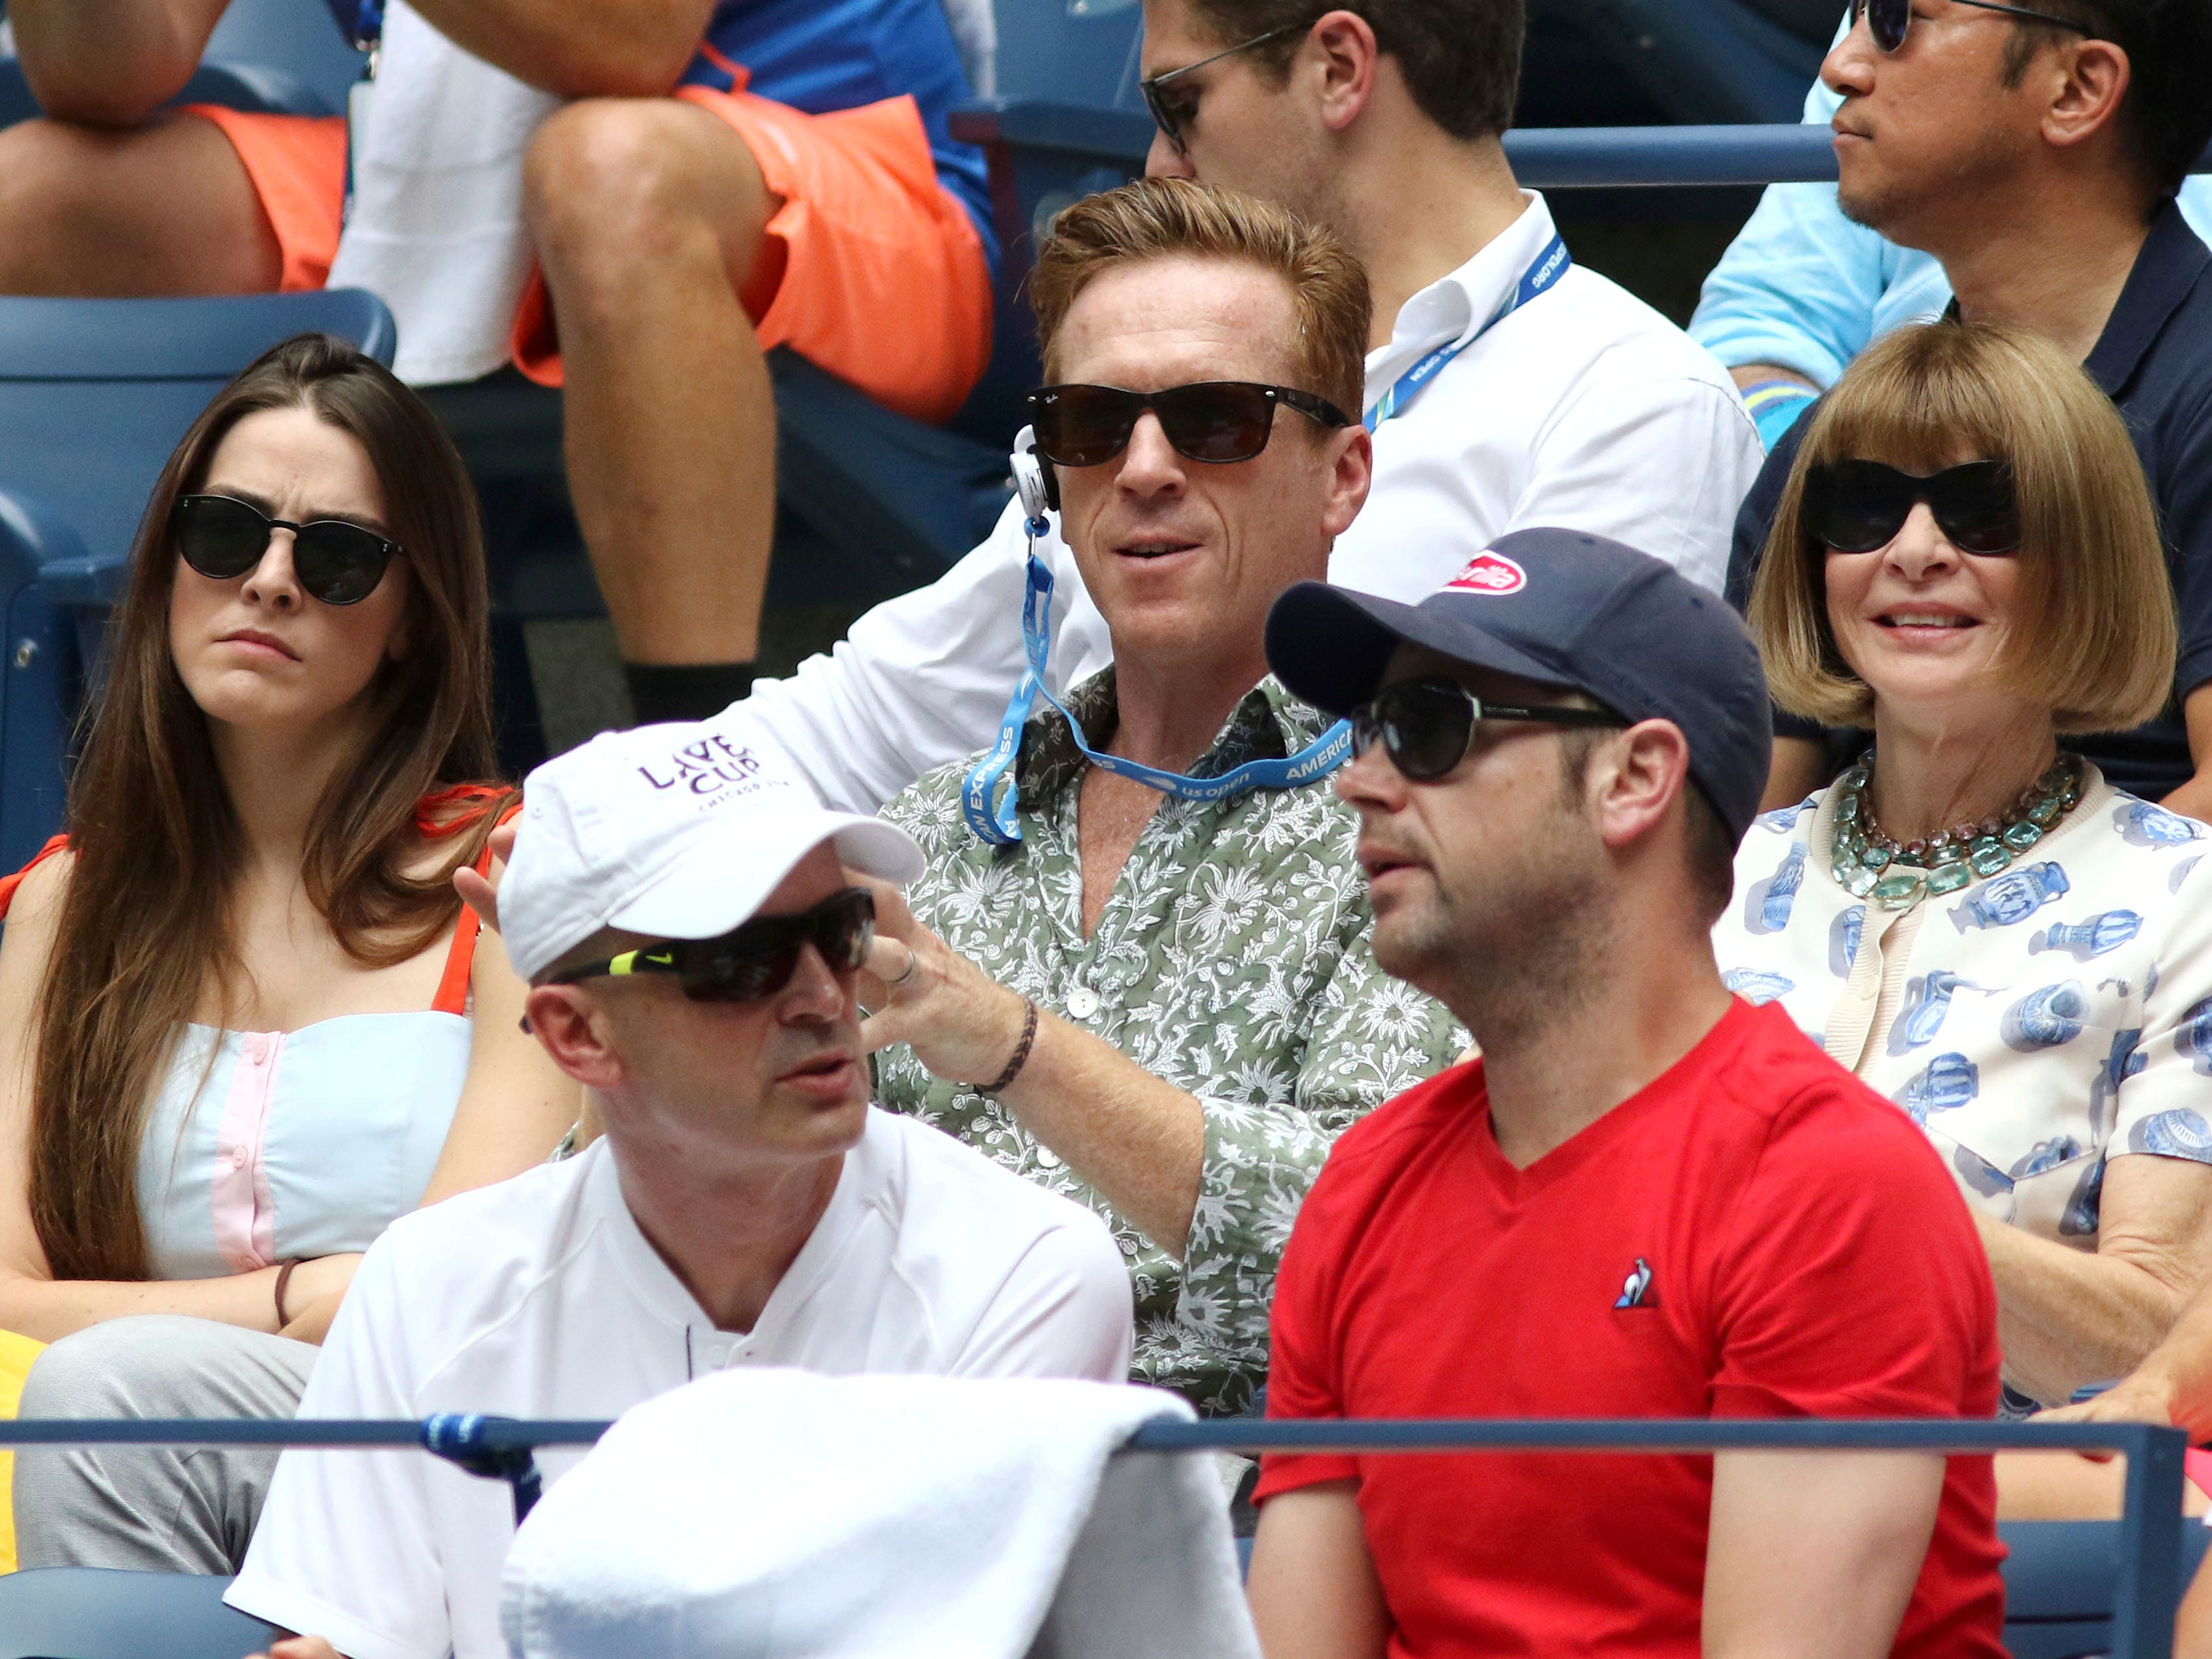 Bee Shaffer, from top left, Damian Lewis and Anna Wintour attend the second round of the US Open.